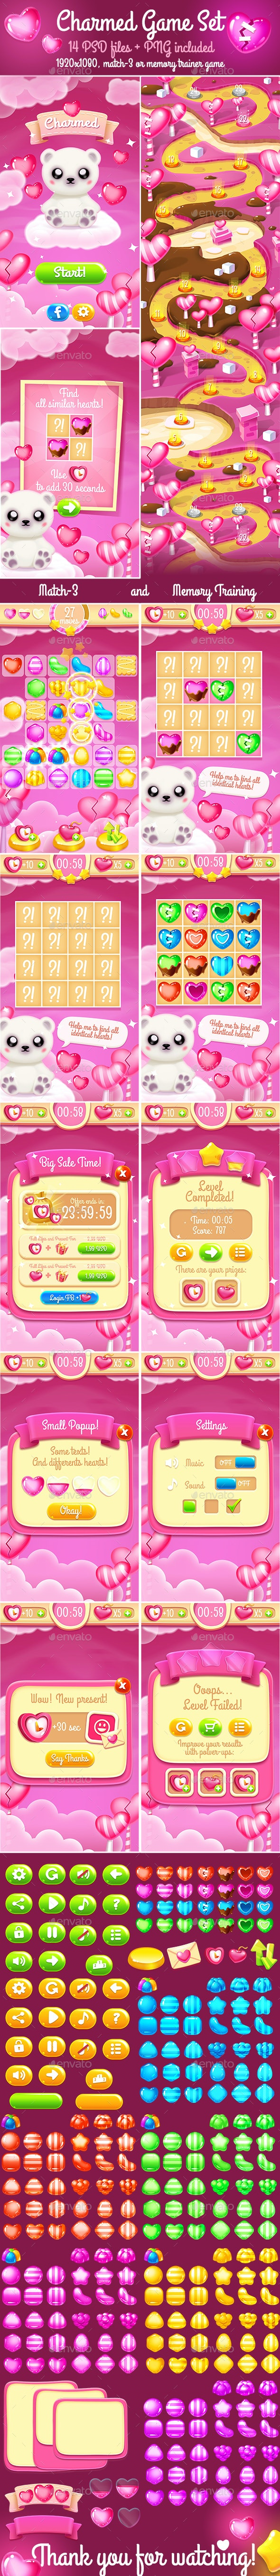 Charmed Valentine Game Template - Game Kits Game Assets